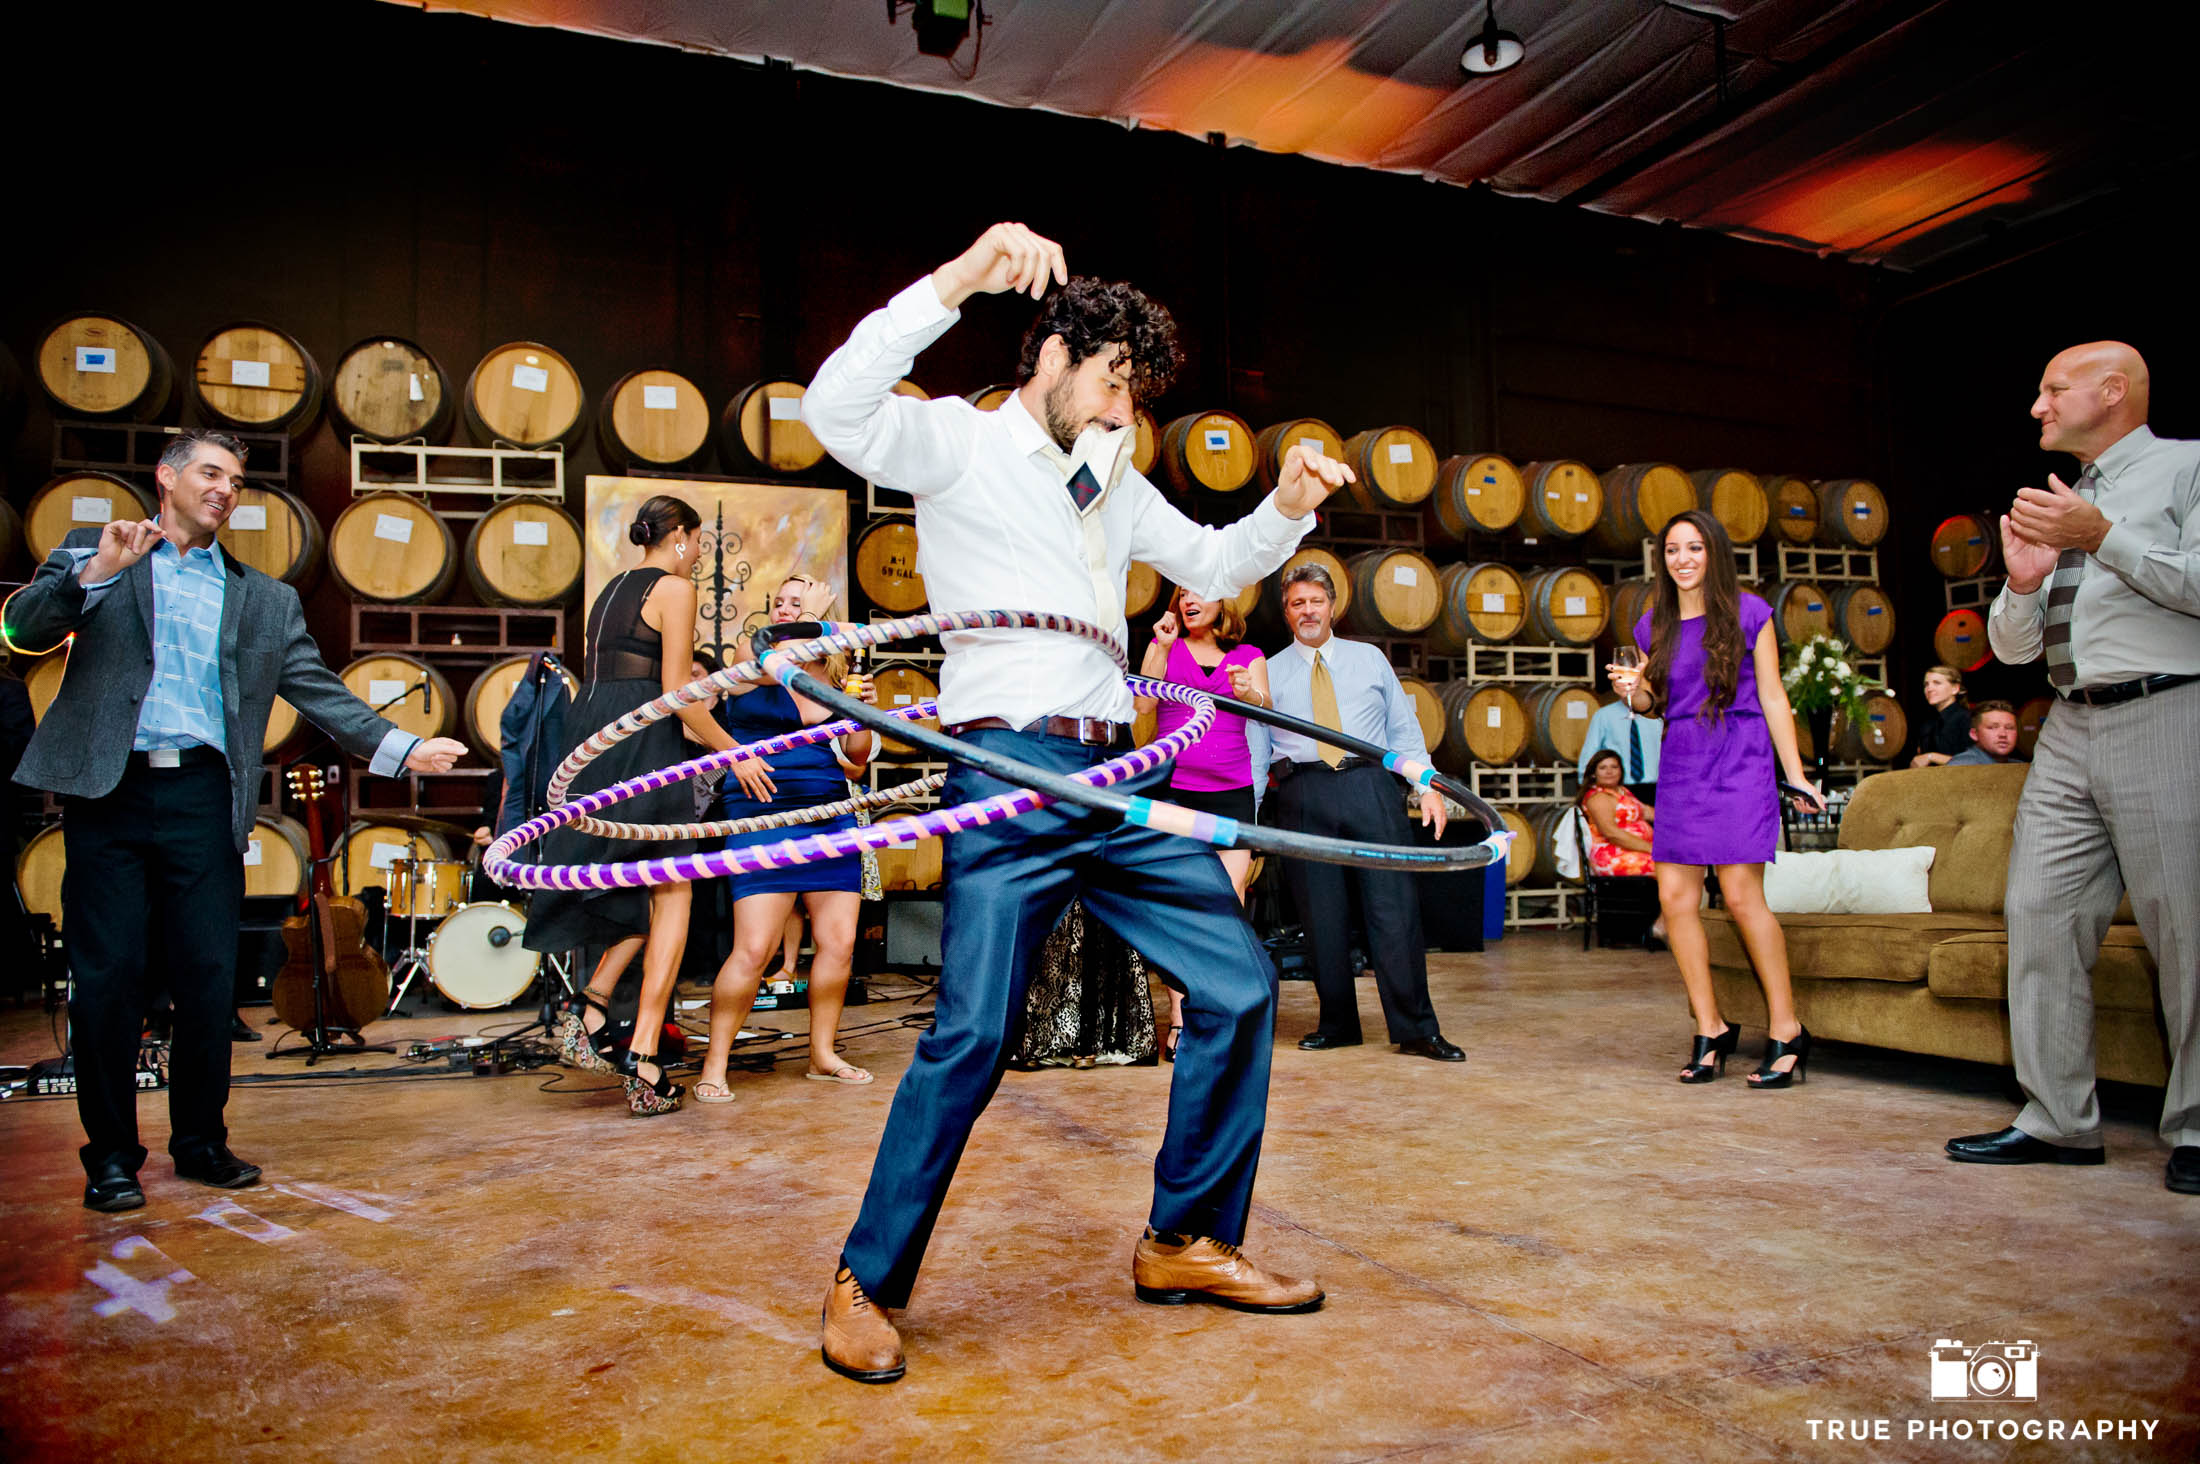 Guest hula-hoops during wedding reception